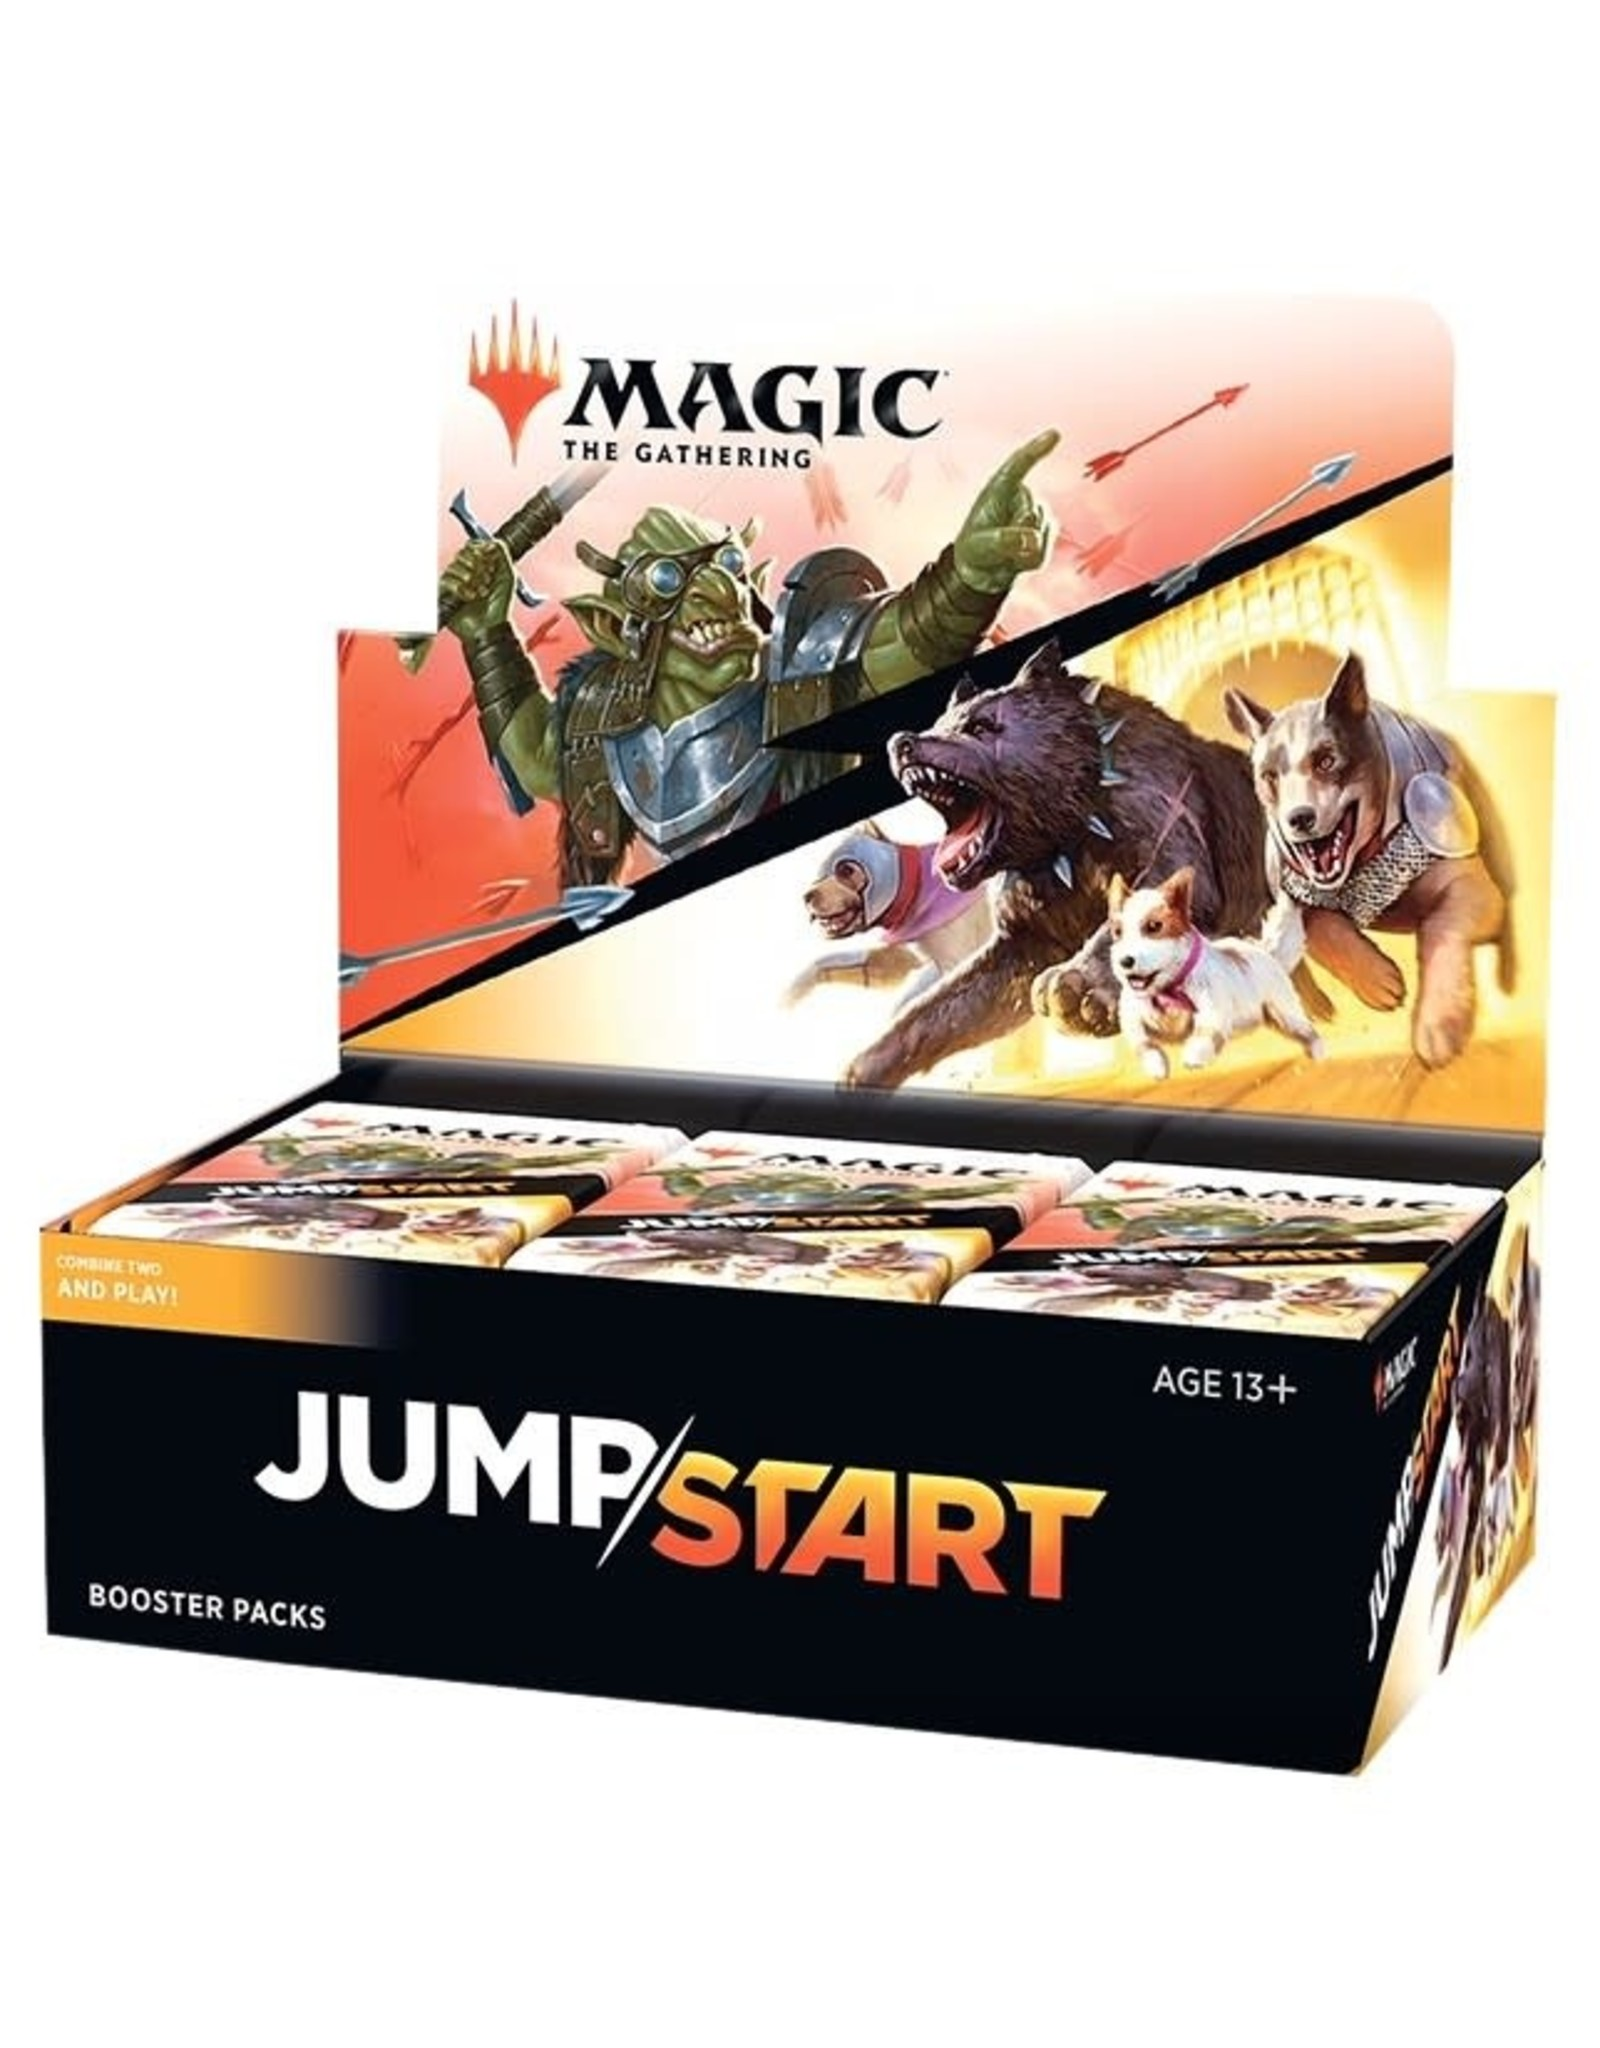 Jumpstart Booster Box - PREORDER, AVAILABLE JULY 17